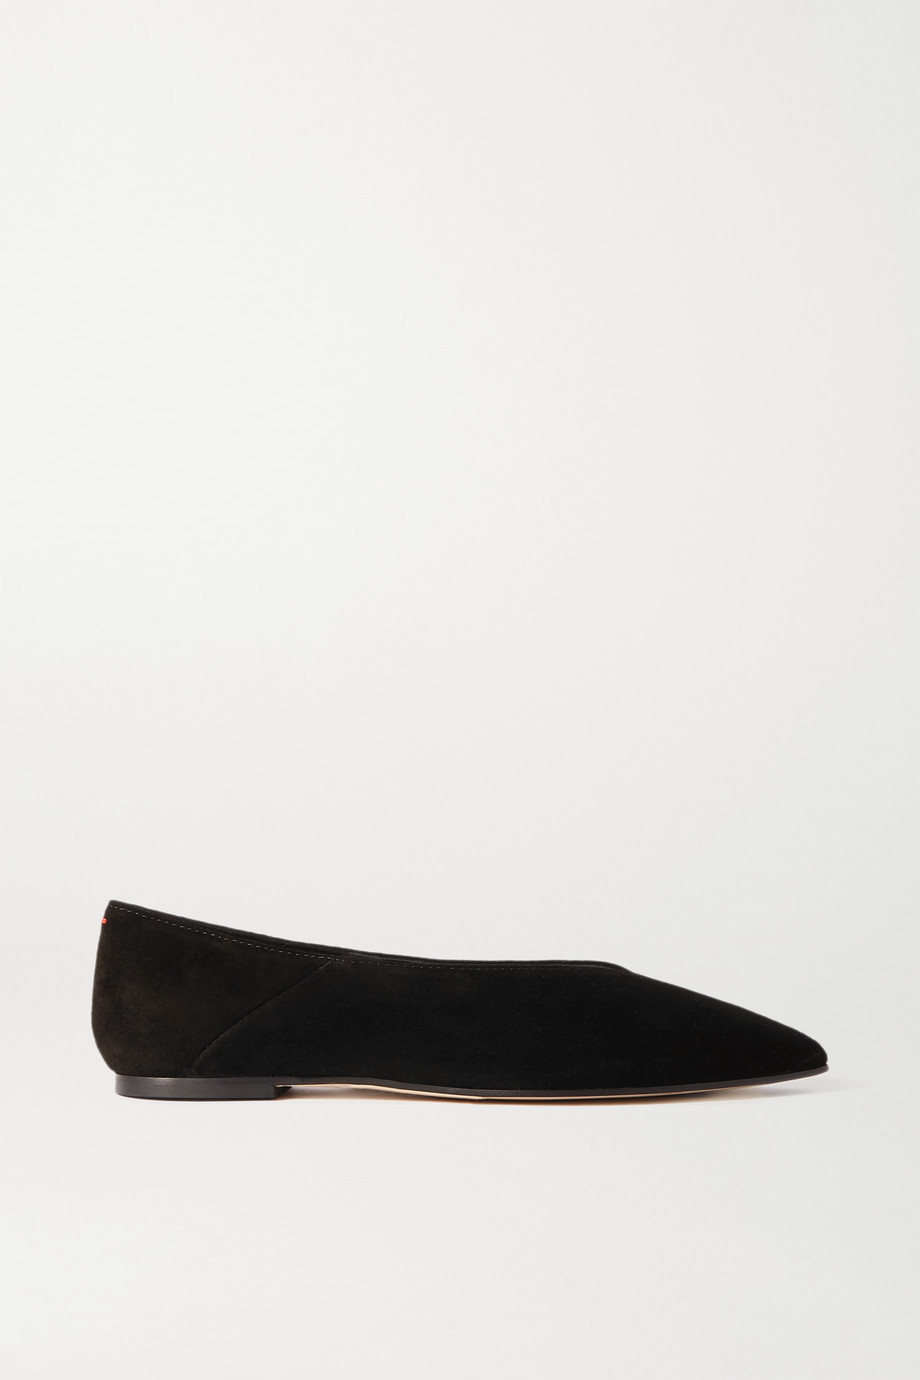 aeyde Moa suede point-toe flats